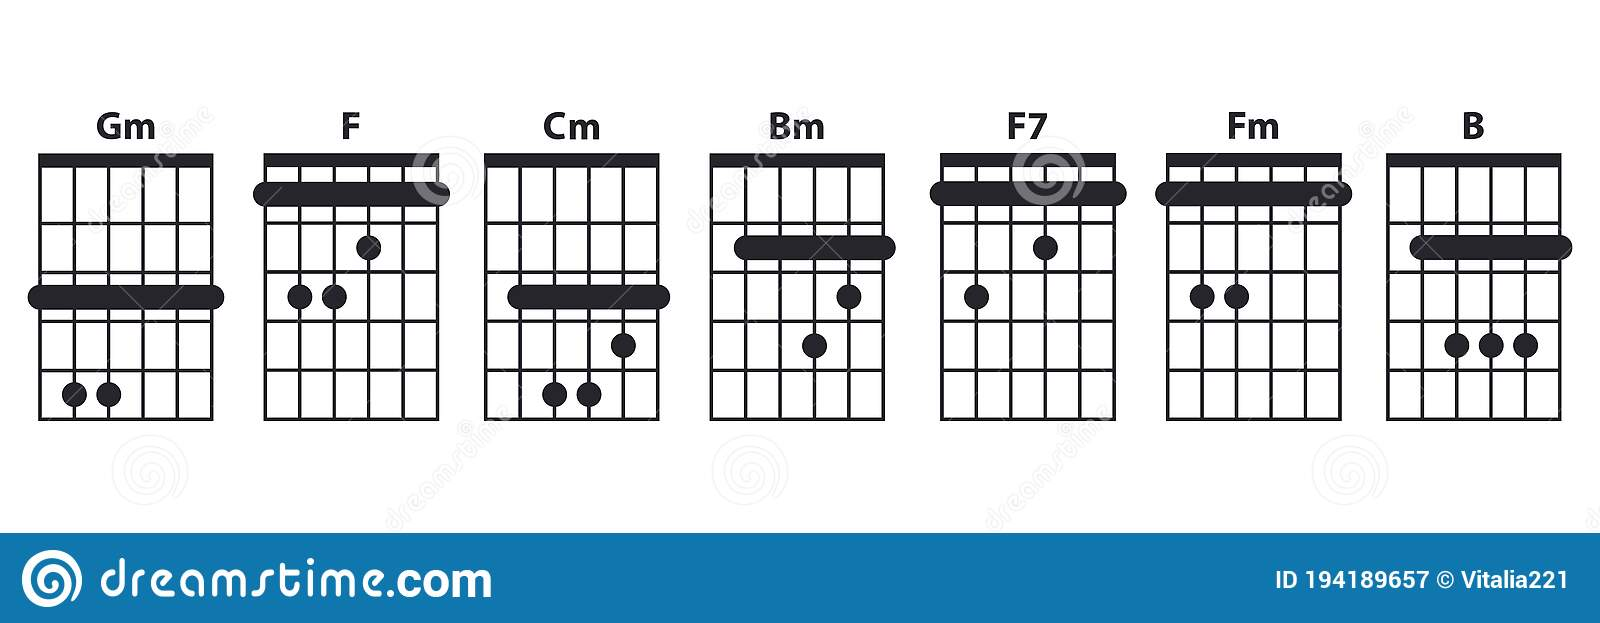 Guitar Chords Icon Set. Guitar Lesson Vector Illustration Isolated ...